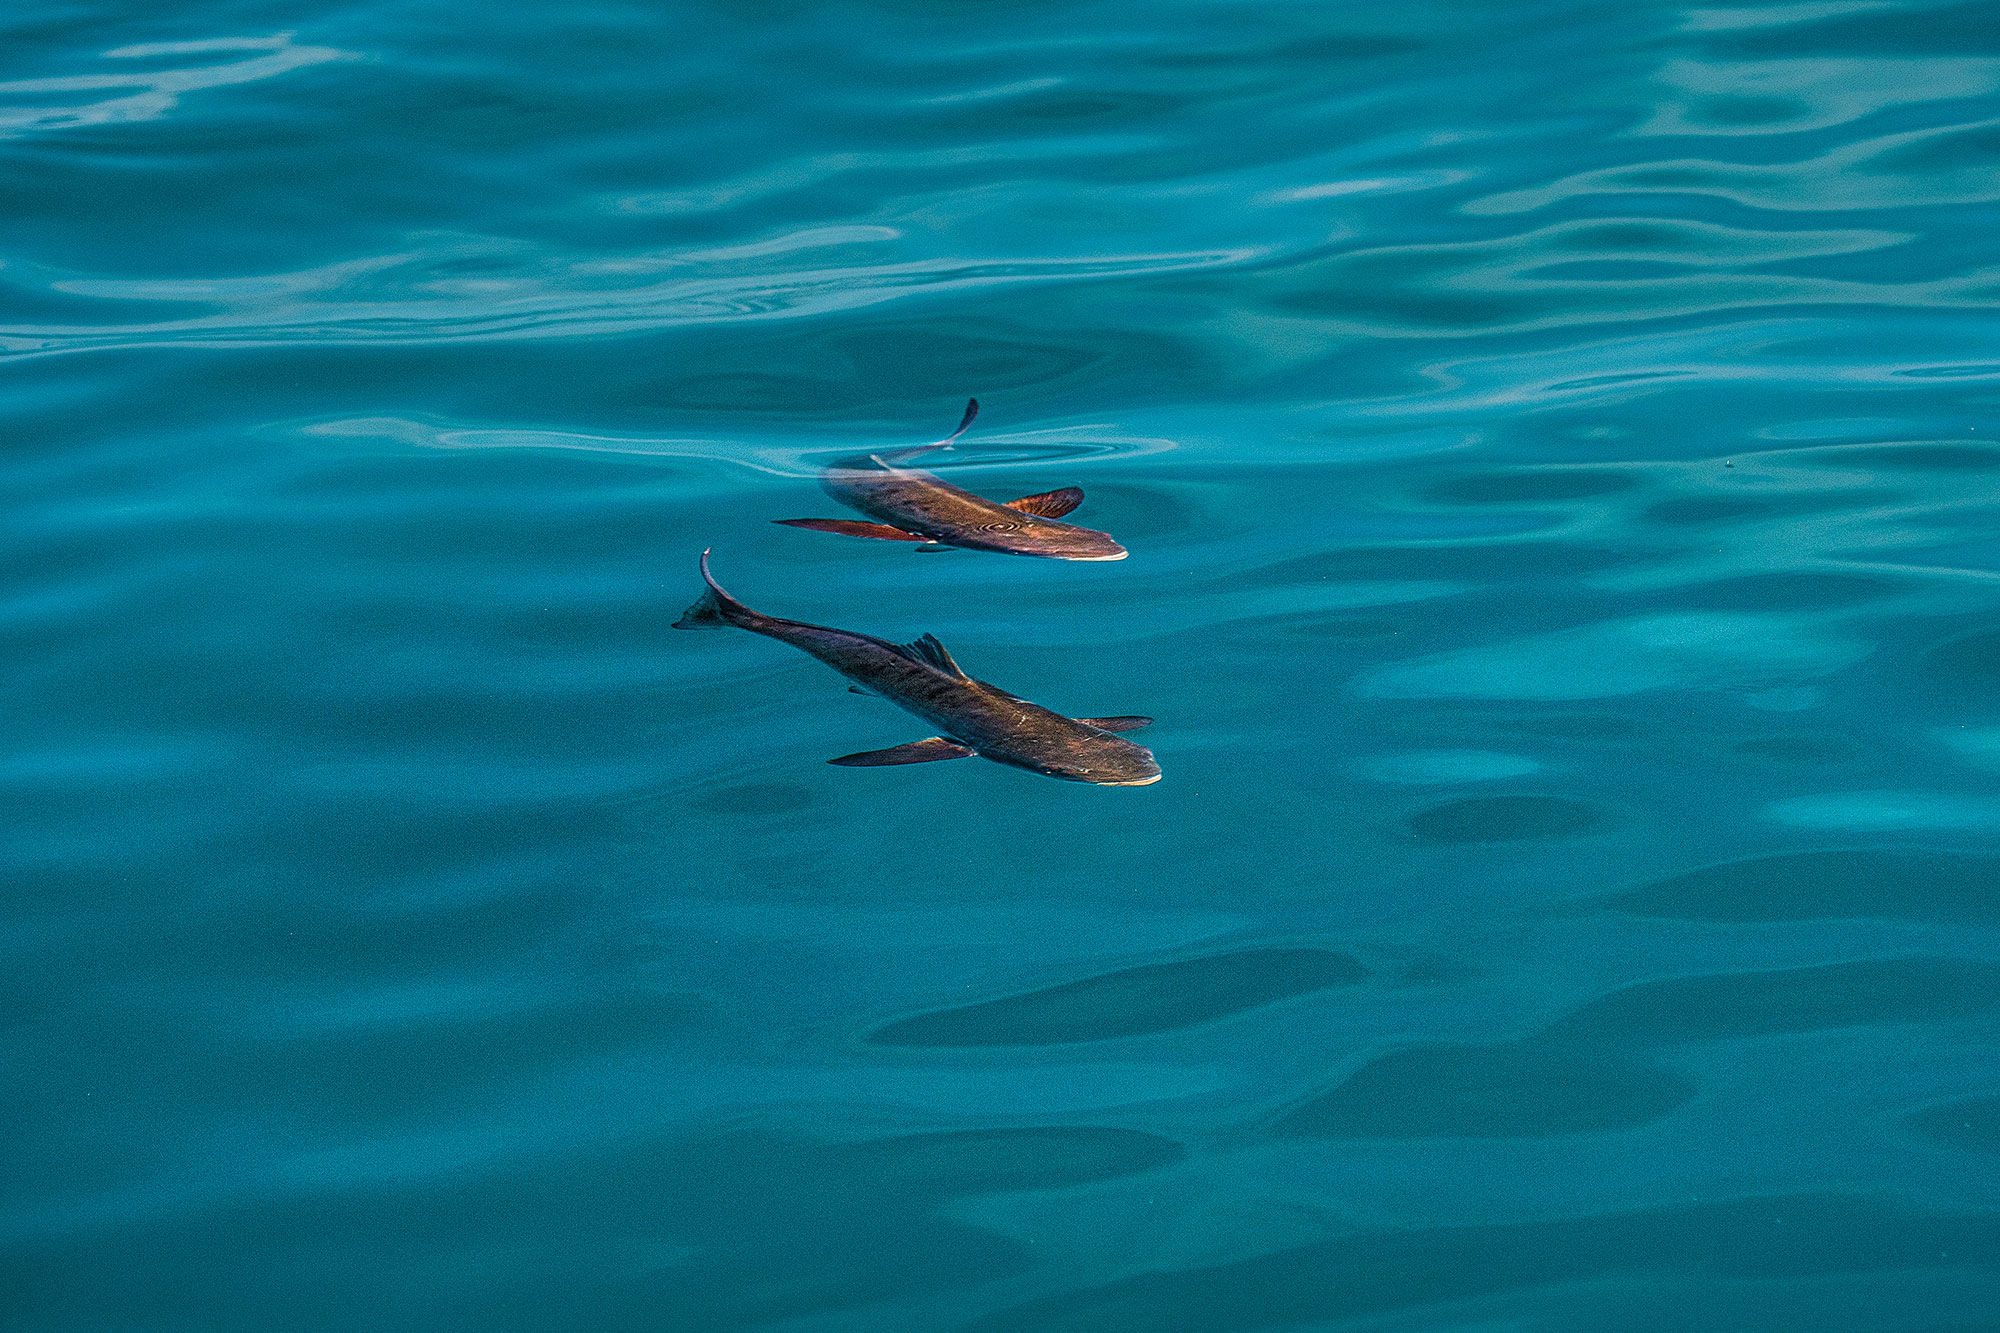 Notoriously curious, cobia routinely abandon caution and approach the boat in search of a meal.